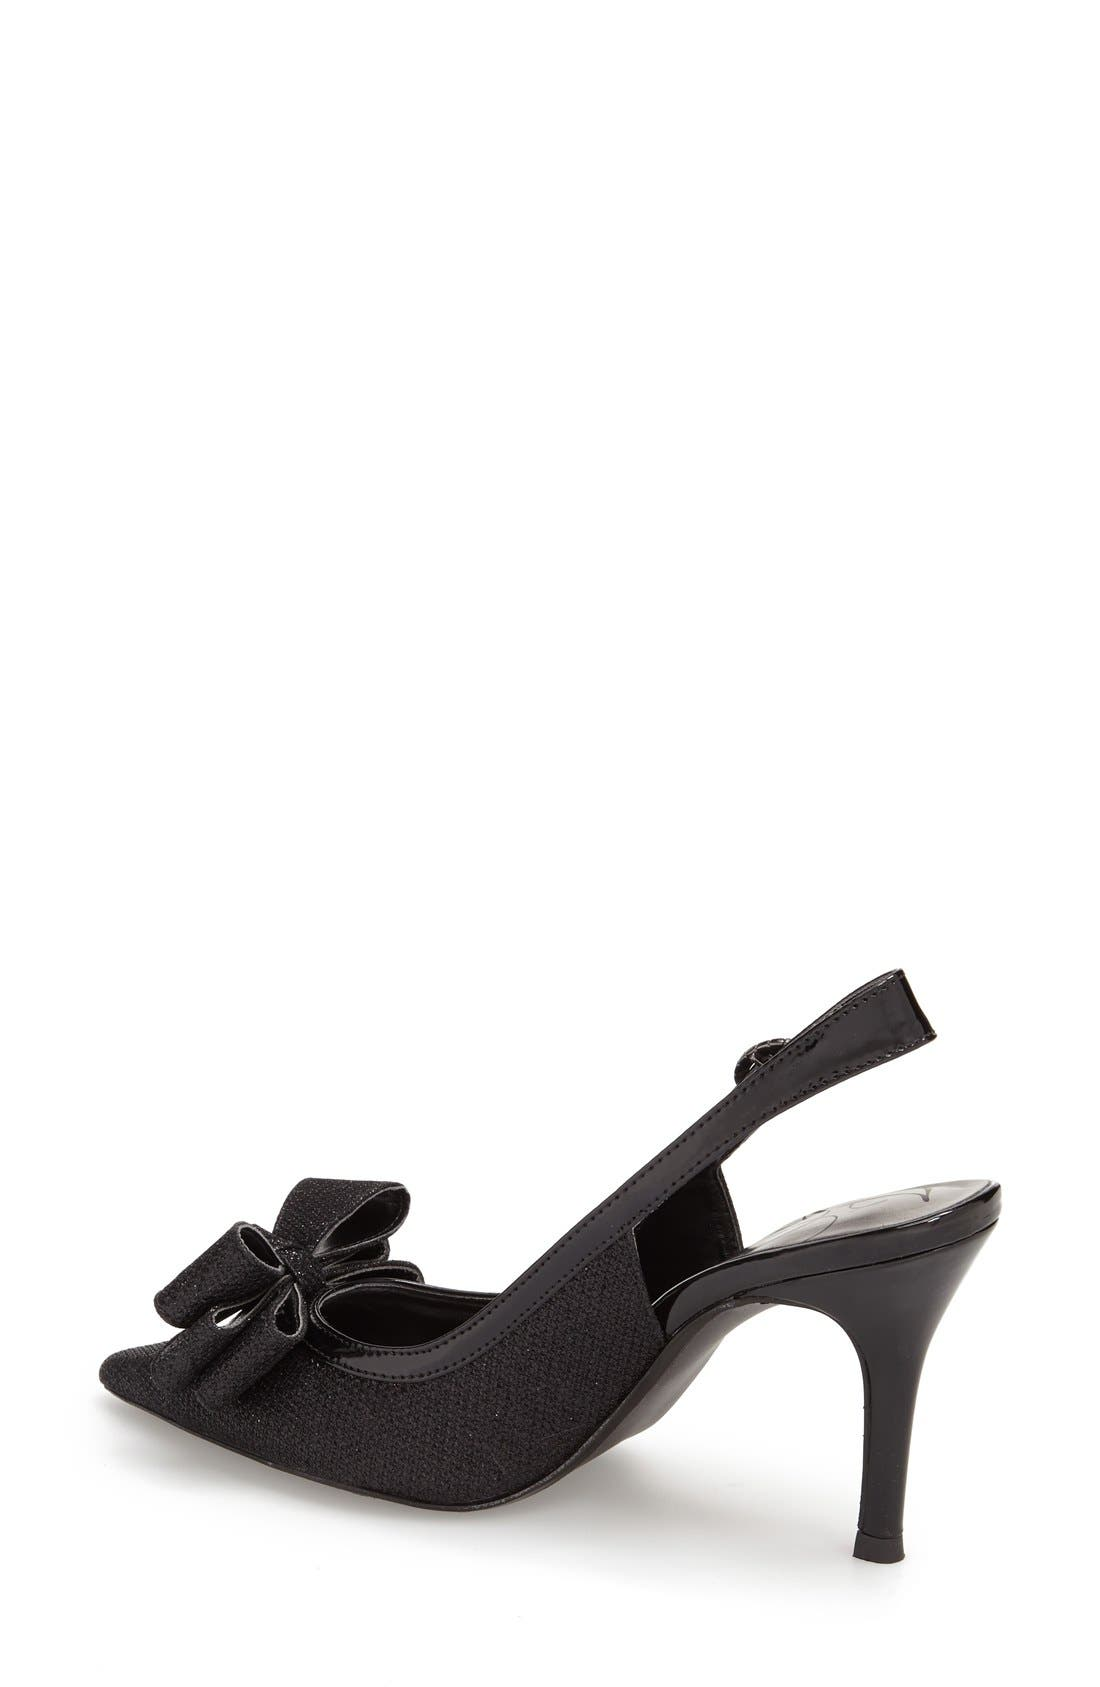 'Charise' Slingback Pump,                             Alternate thumbnail 2, color,                             001